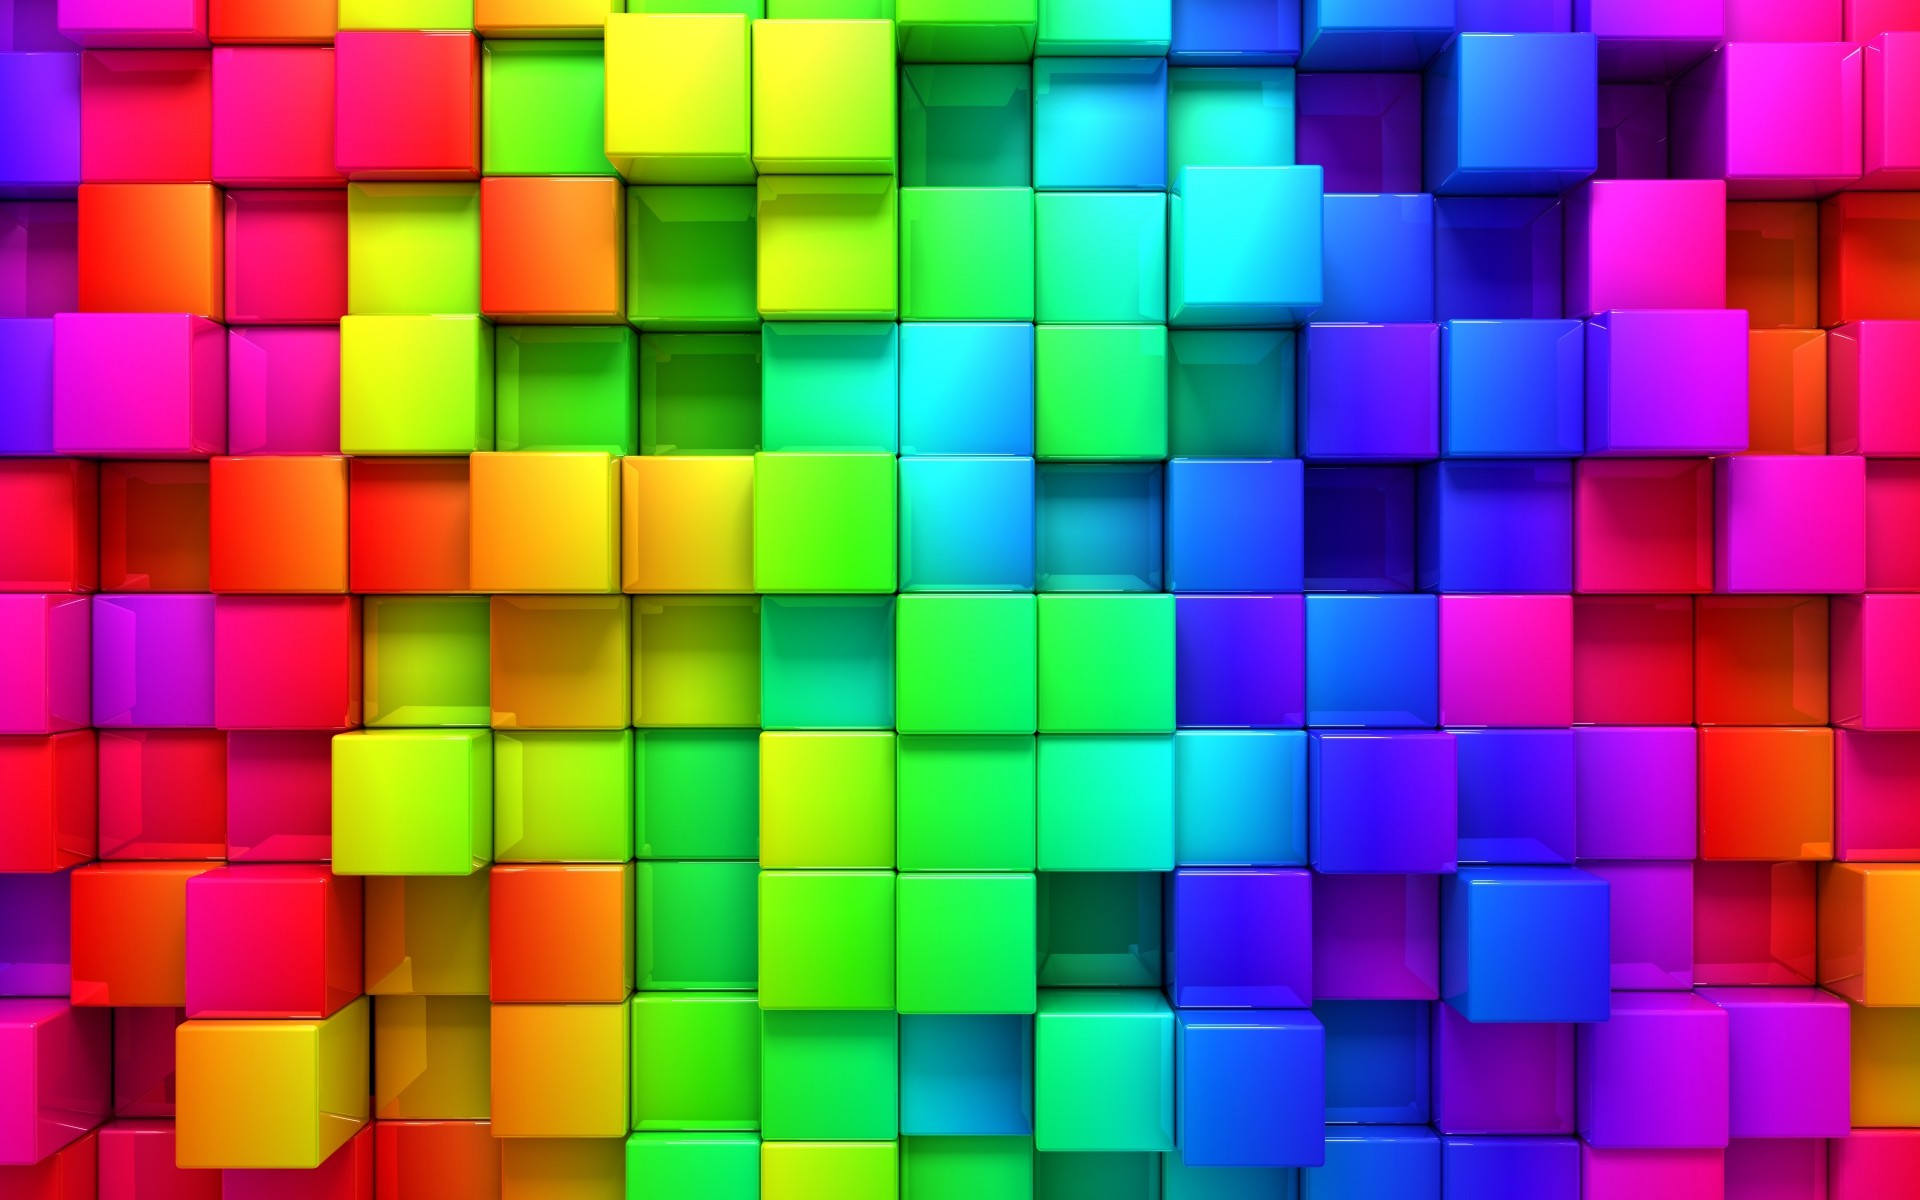 Colorful Wallpaper For Computers Awesome Picture Image Colorful Cool Backgrounds 1920x1200 Download Hd Wallpaper Wallpapertip